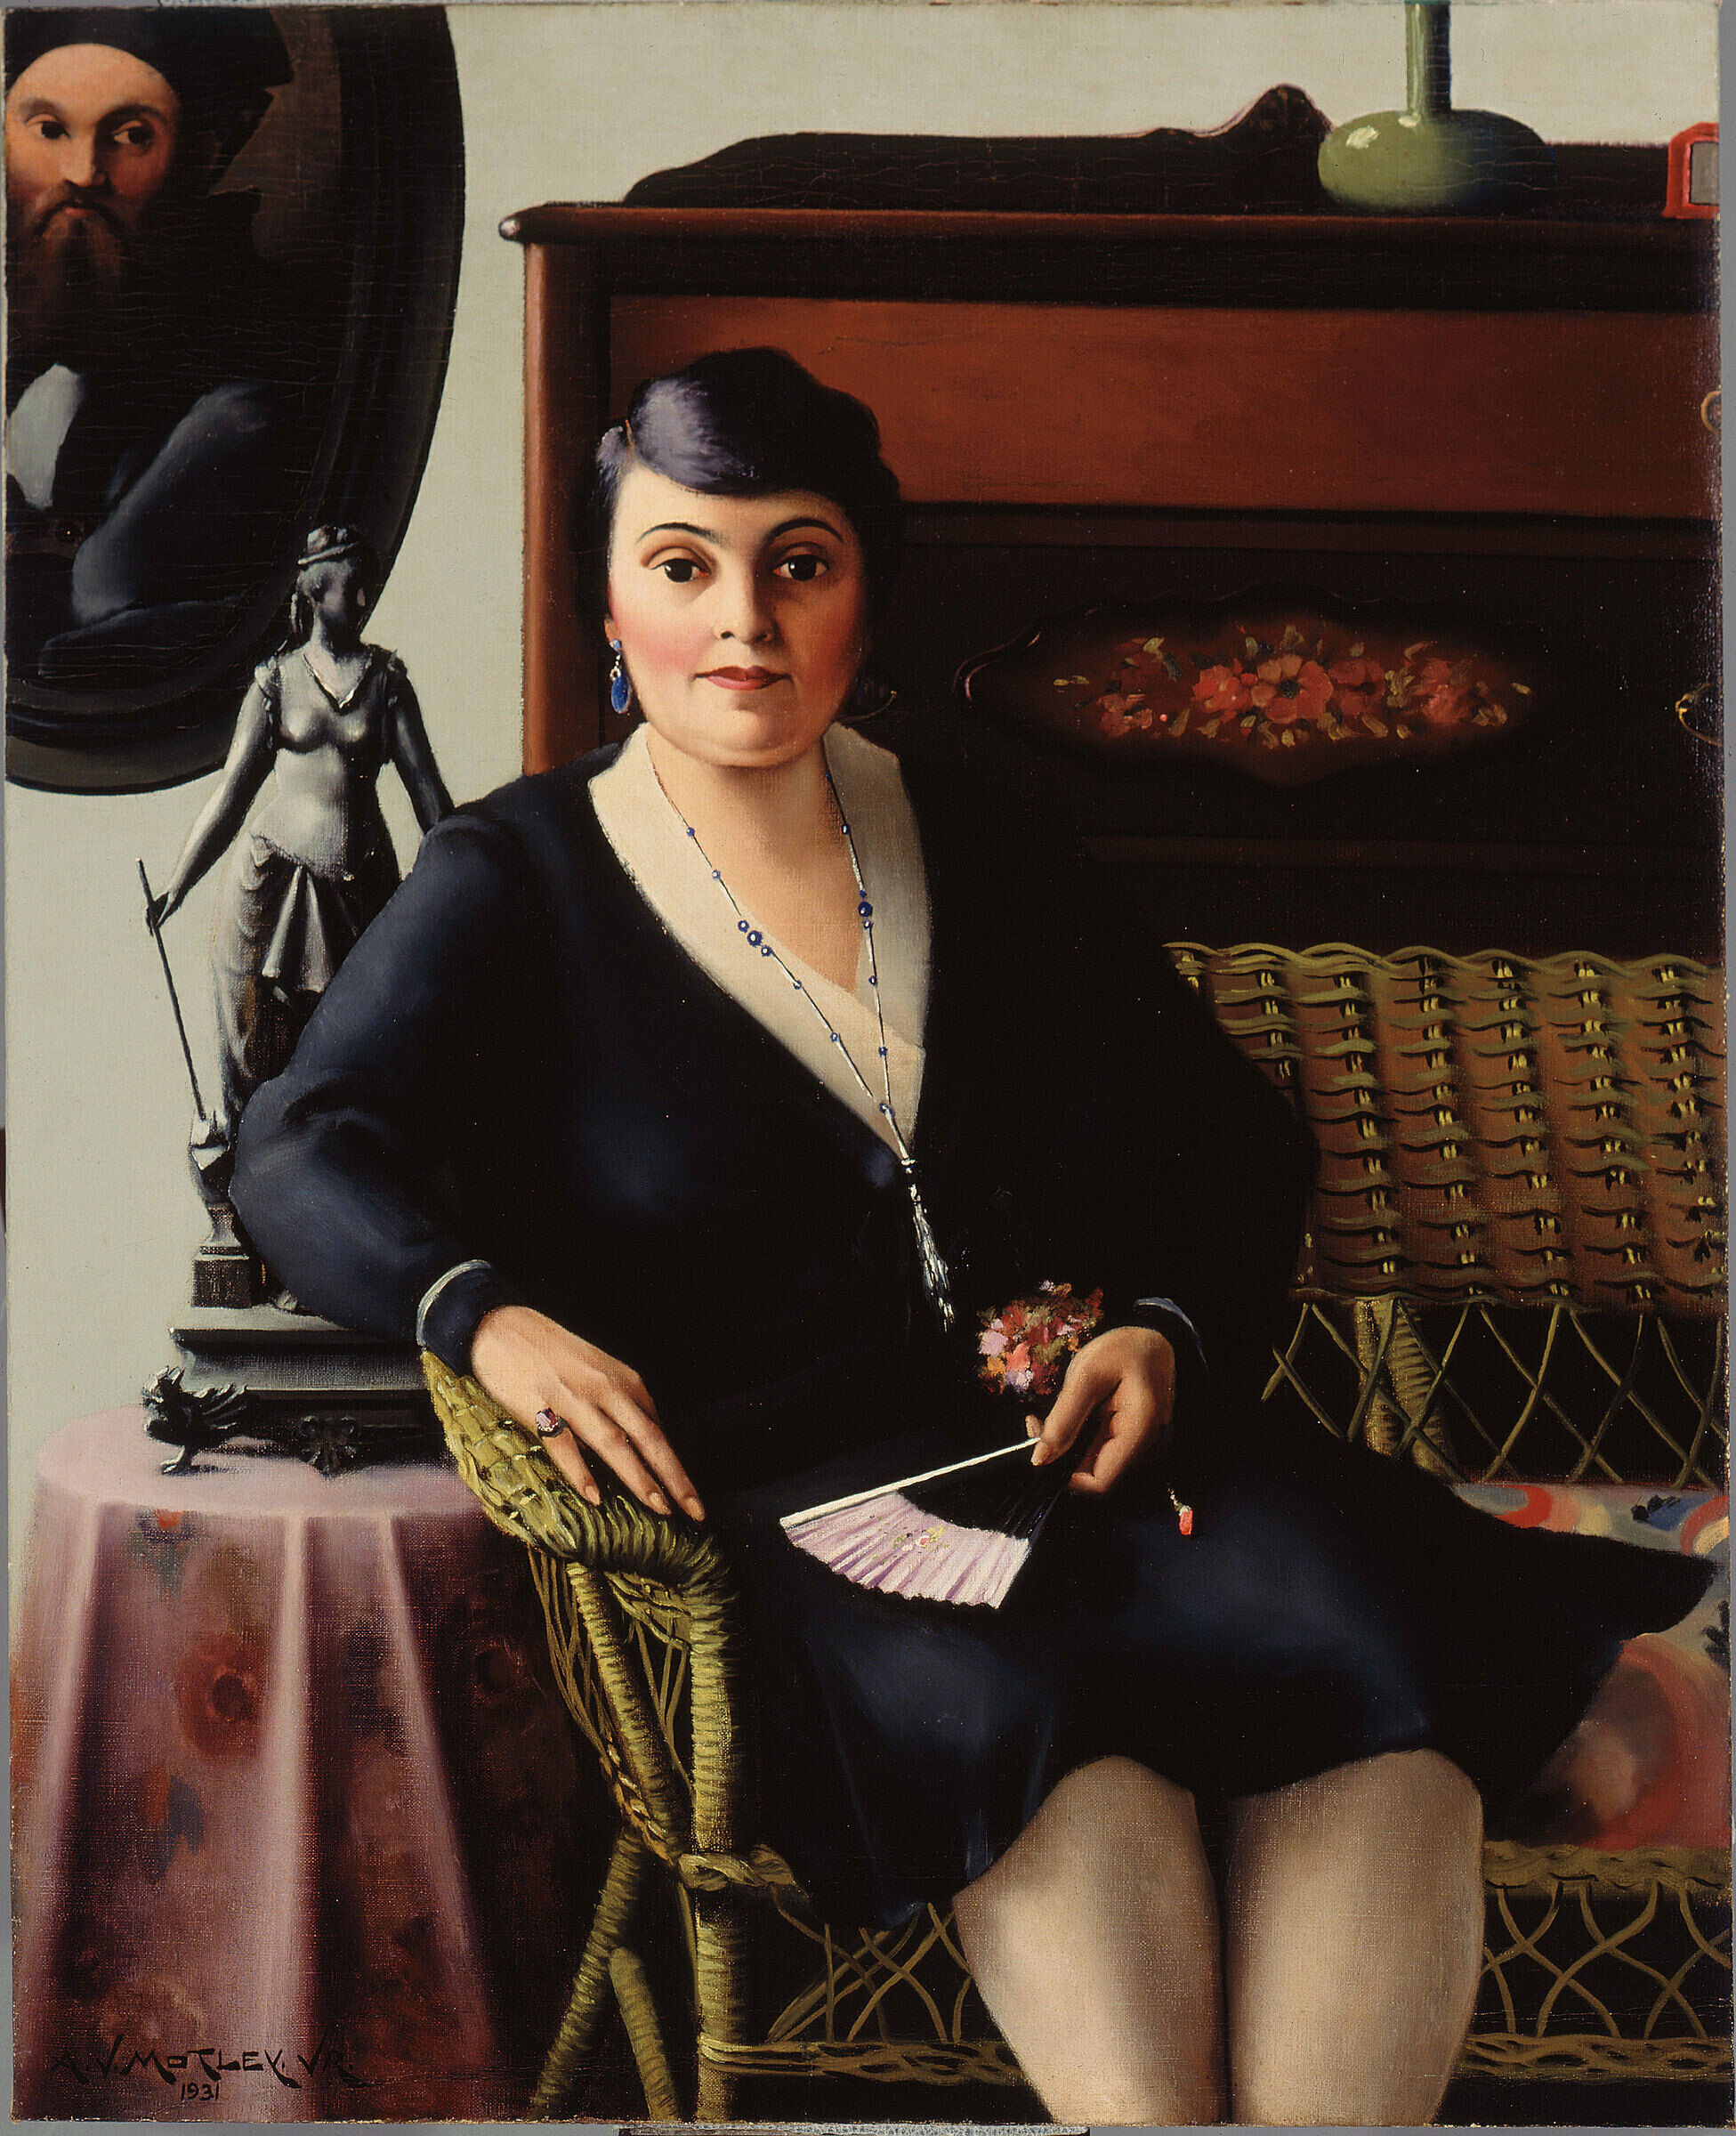 A woman in a black dress sits on a wicker chair.